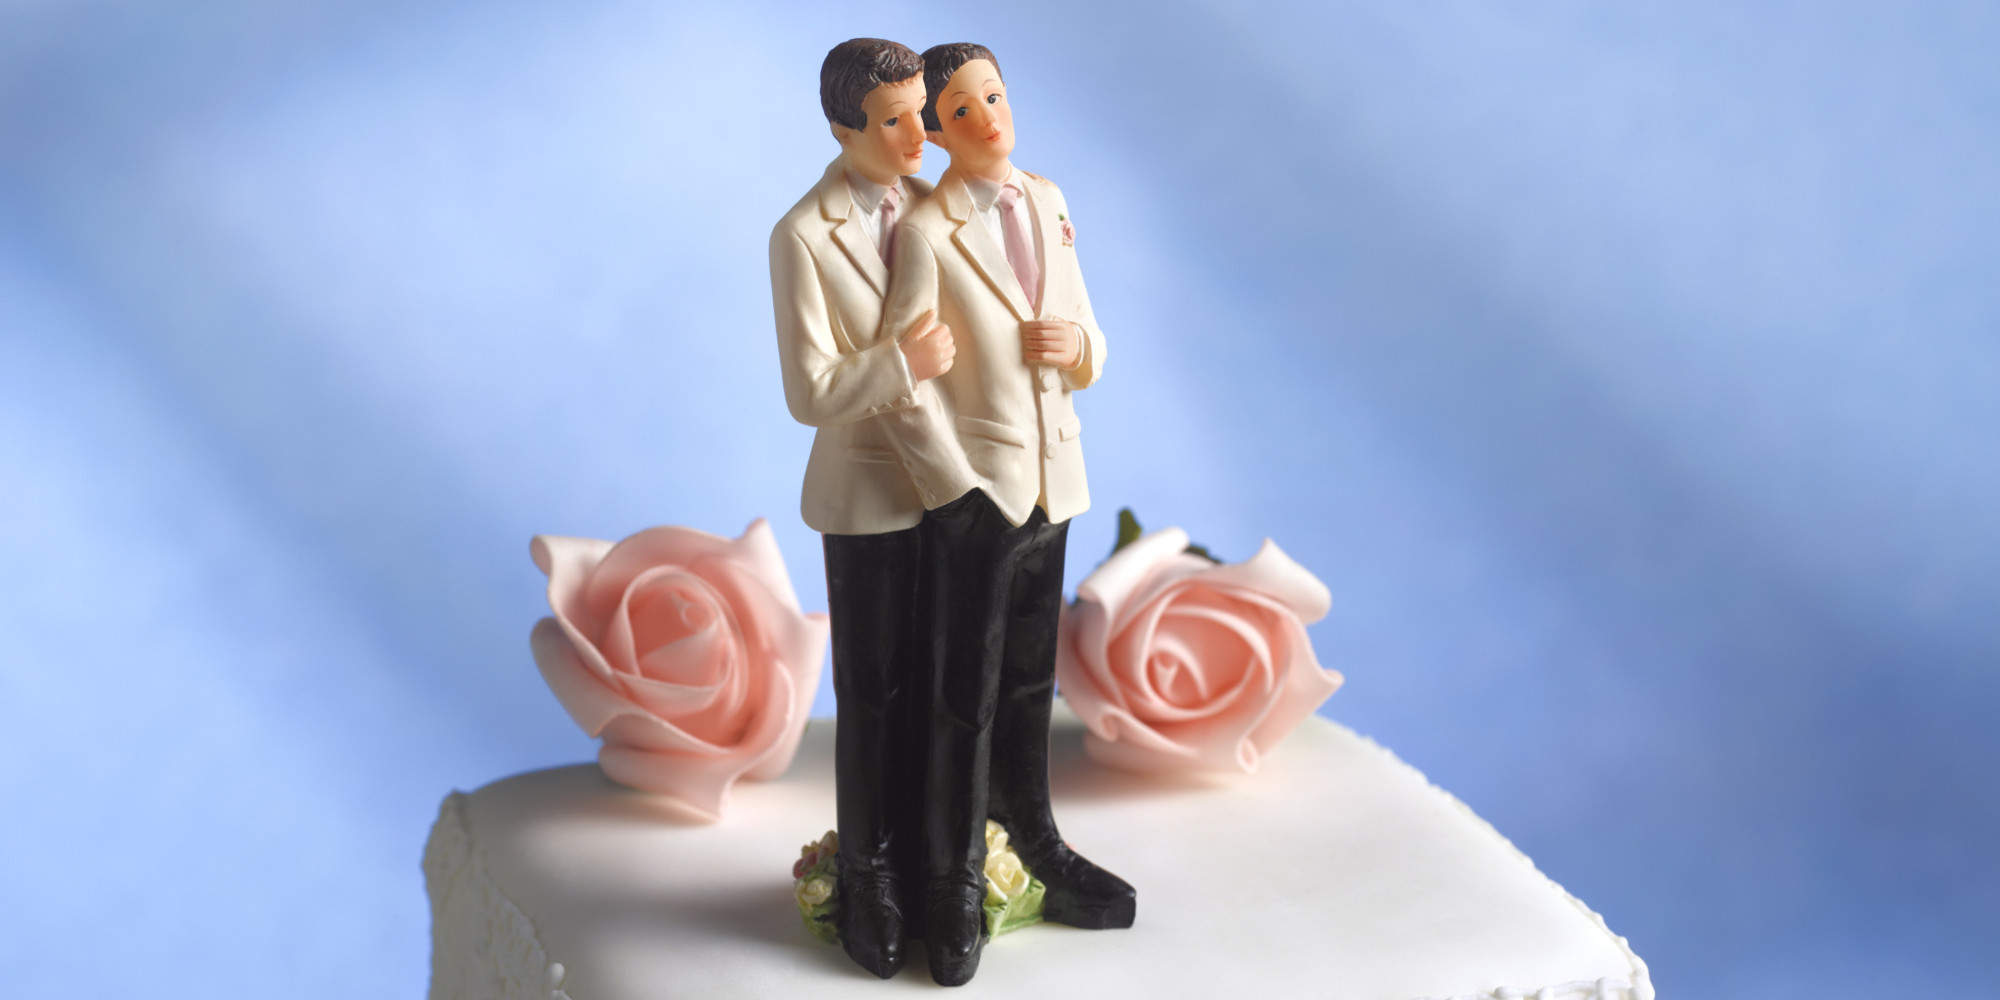 Wedding Cake Ideas For Gay Wedding : Requiring A Baker To Make A Gay Wedding Cake Is Like ...